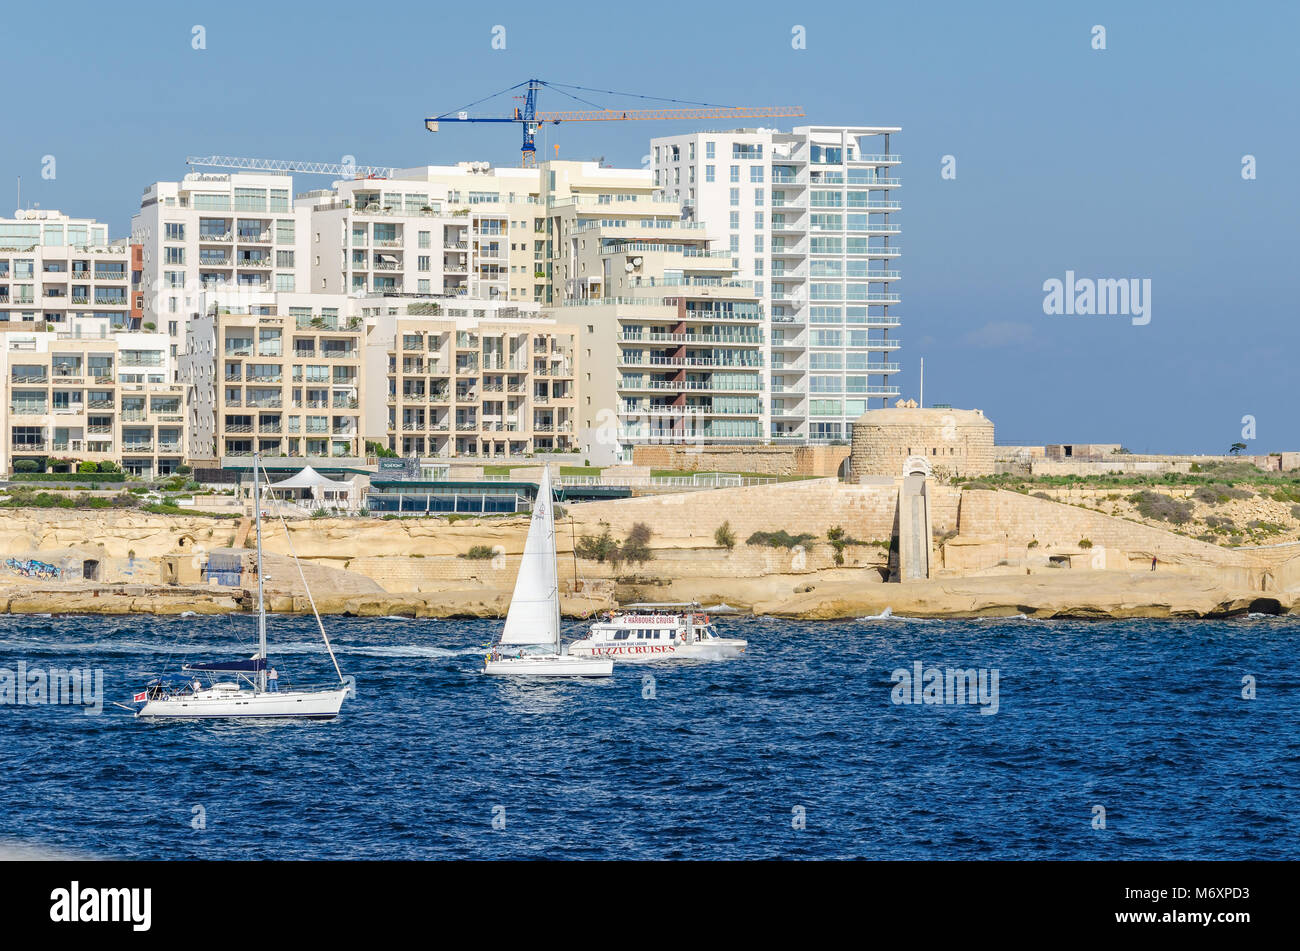 Valletta, Malta - November 8, 2015: Construction of modern buildings close to old fortifications of Order of Saint - Stock Image